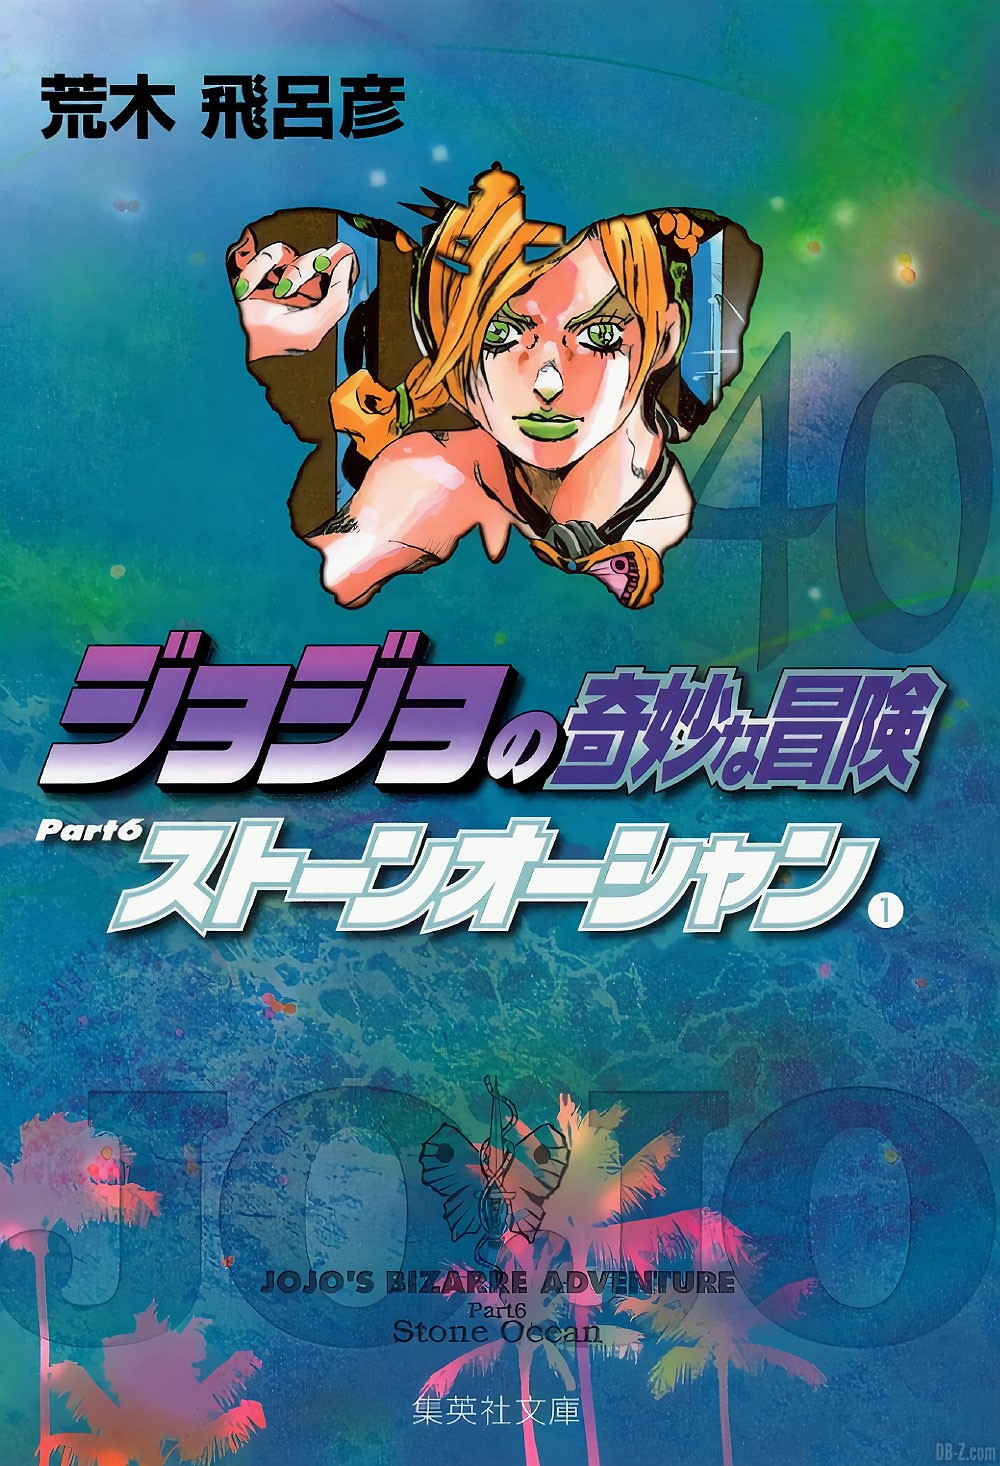 JoJos-Bizarre-Adventure-PART-6-Stone-Ocean